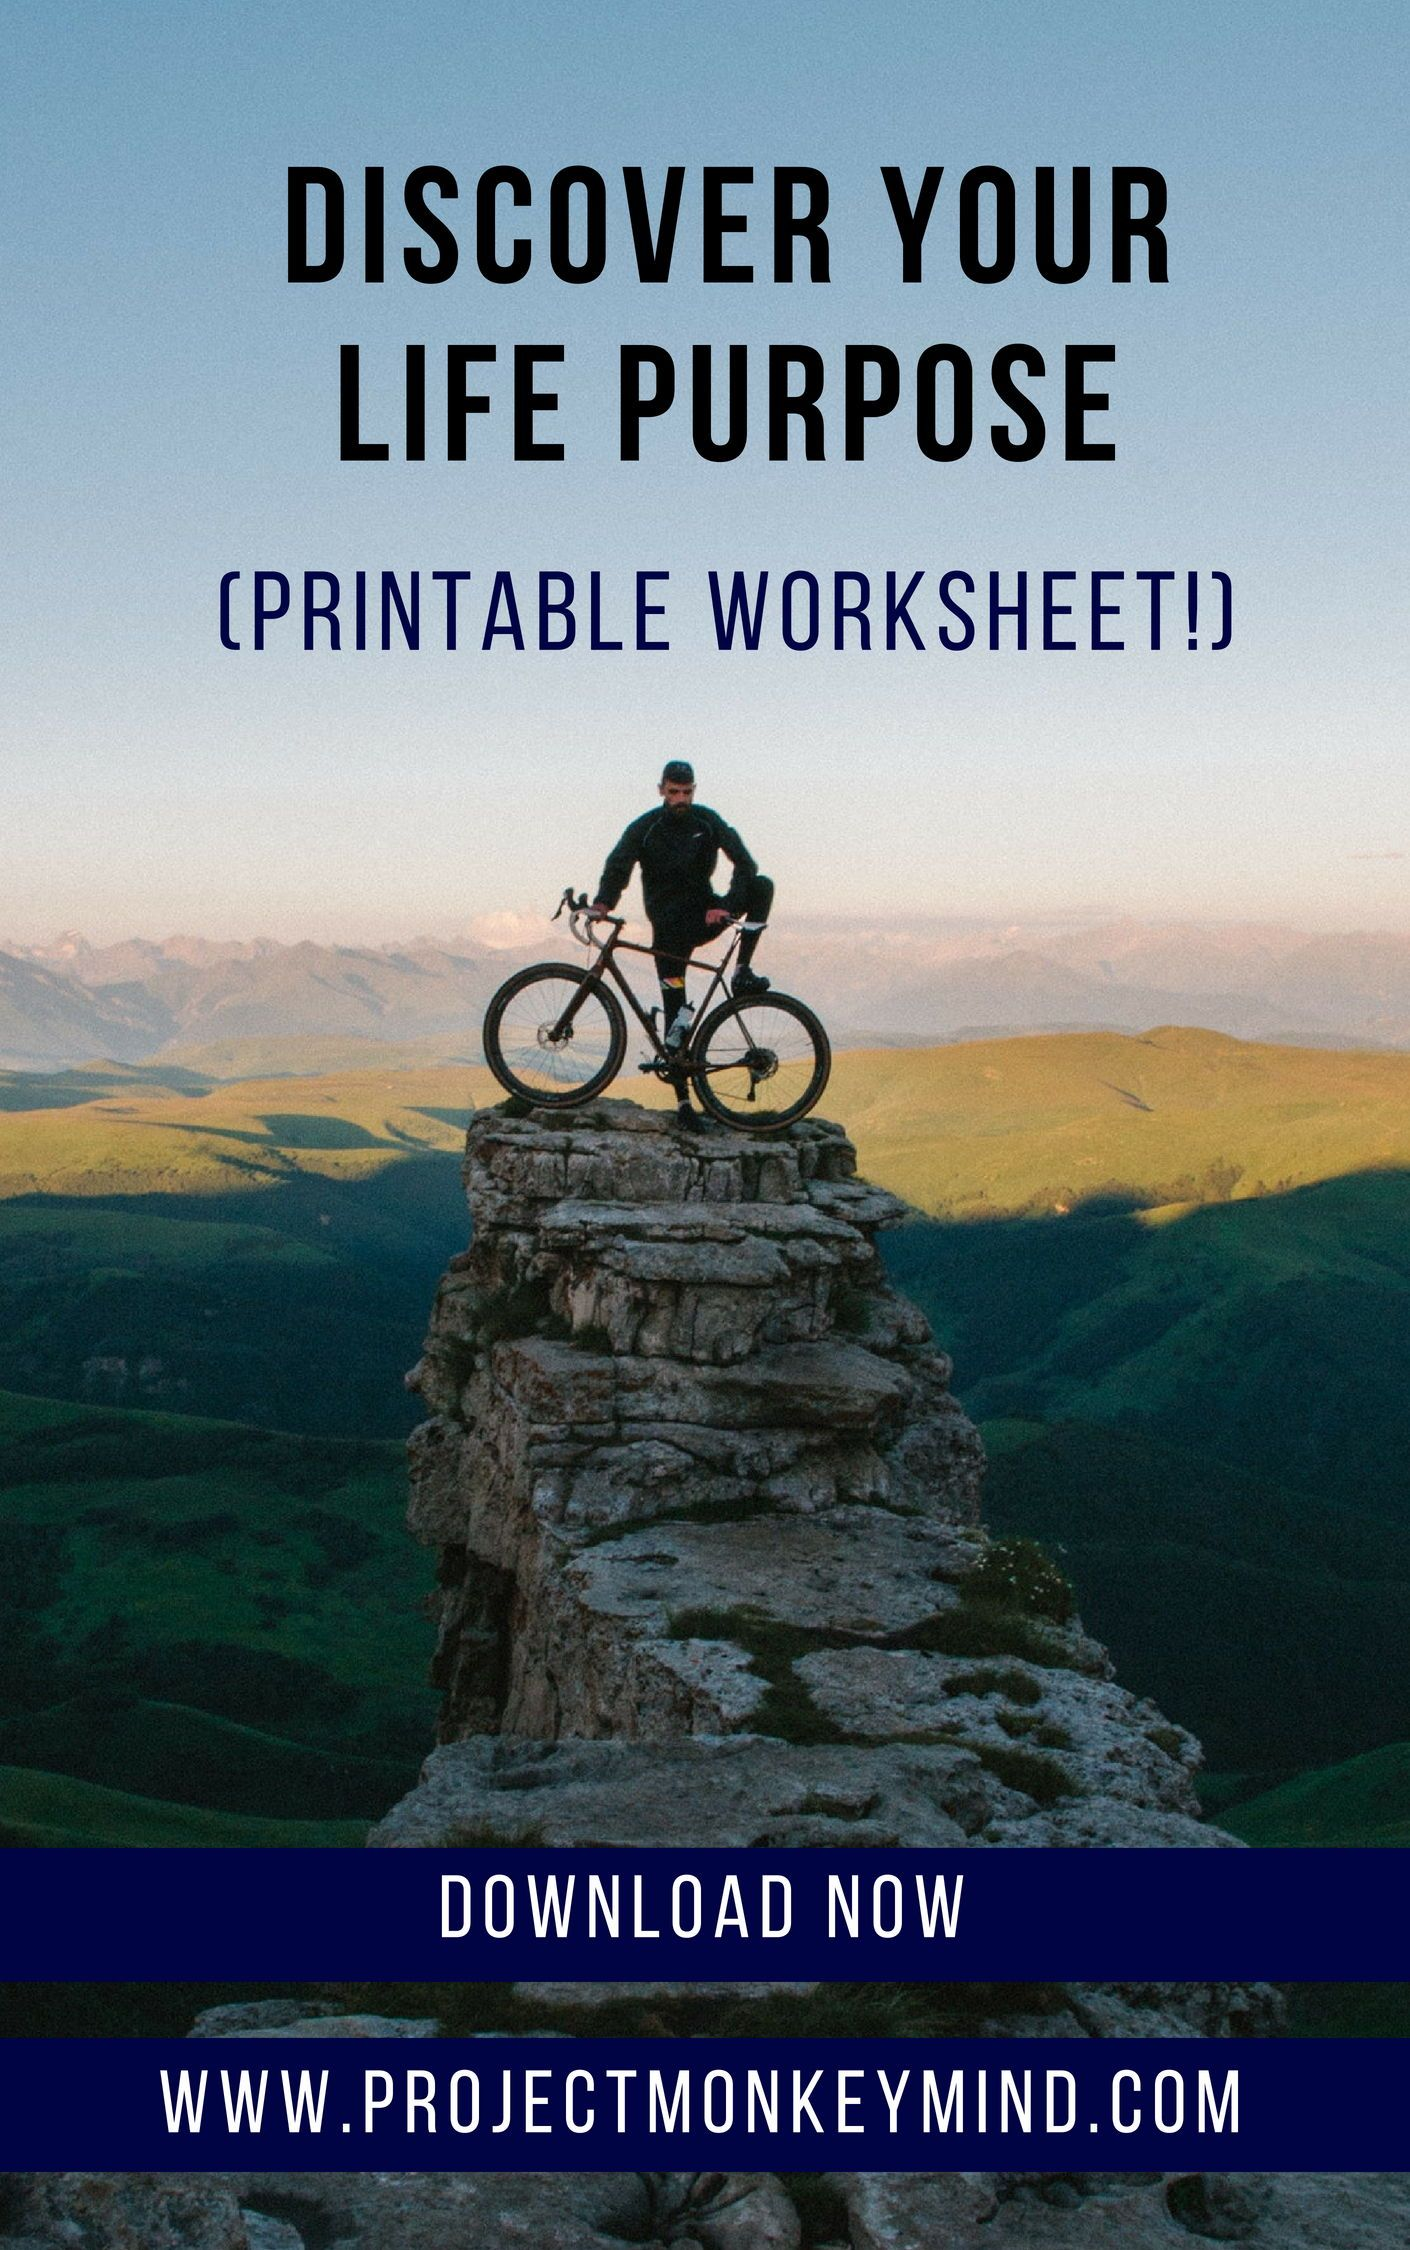 Find Your Life Purpose Today With This Printable Worksheet